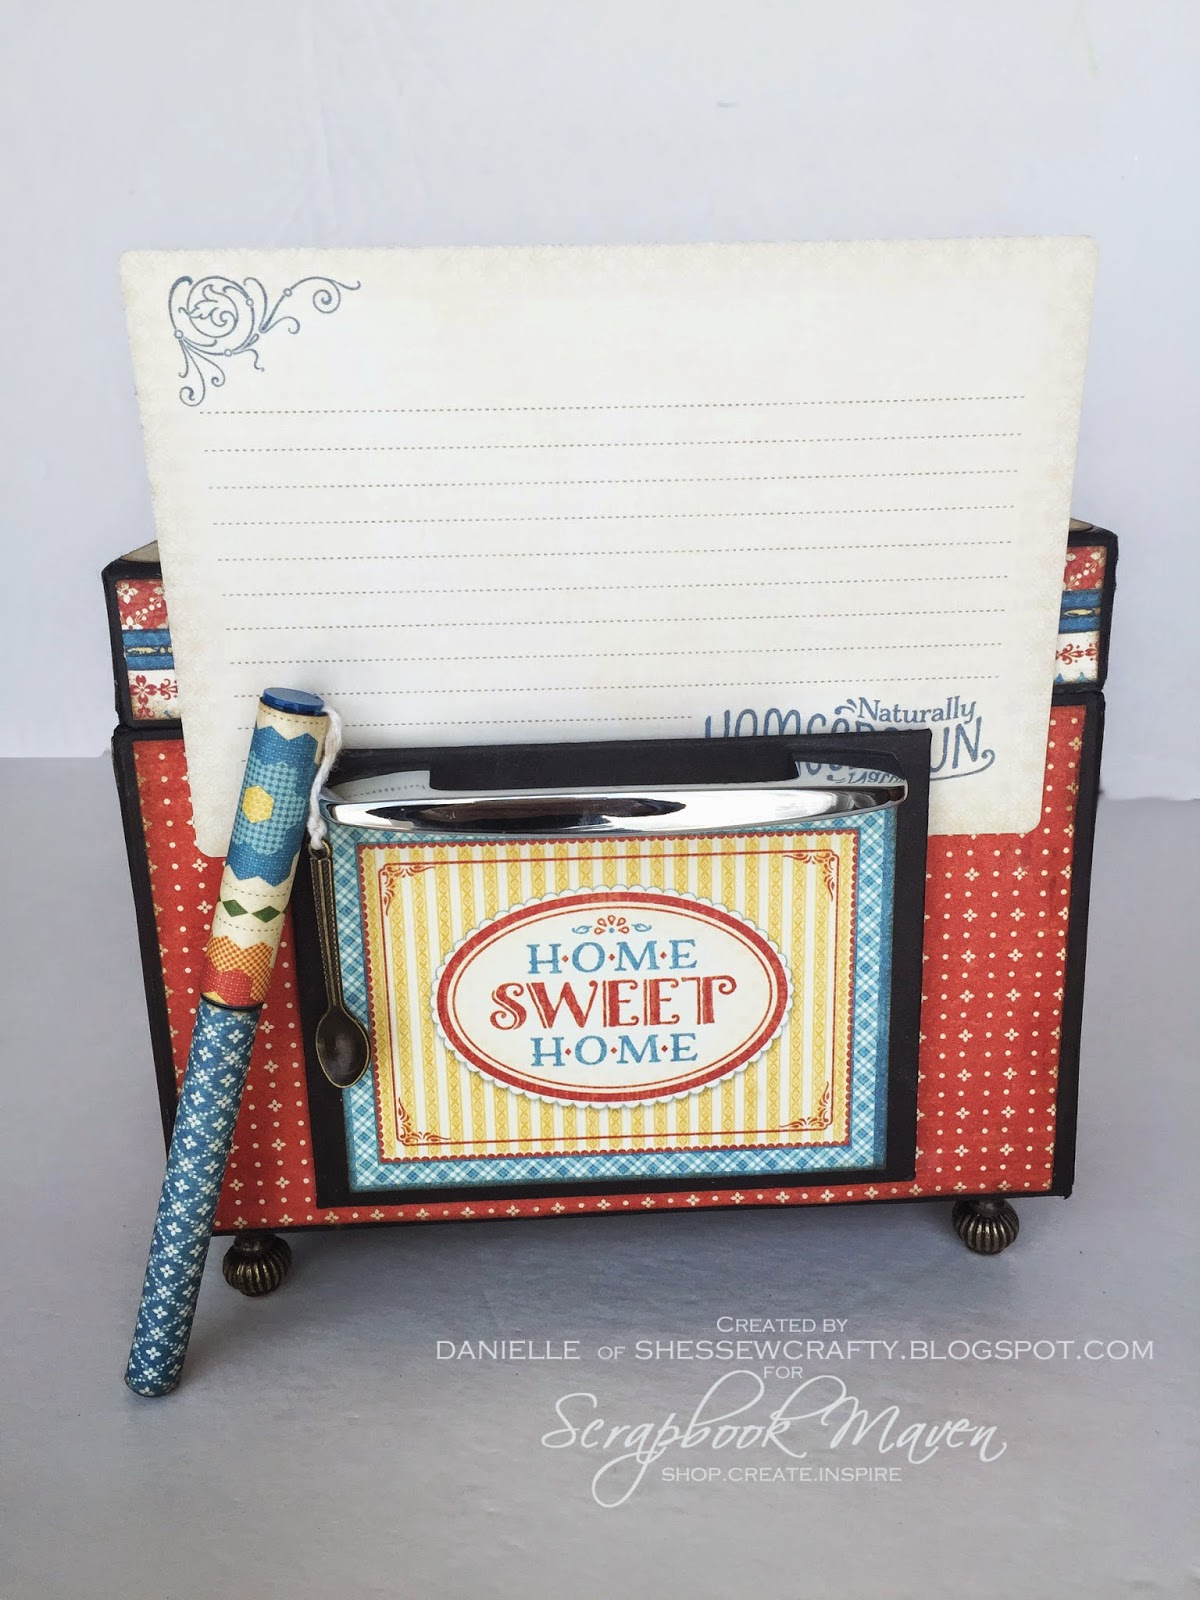 Scrapbook Maven's Retro Stove/Oven Recipe Box using Graphic 45 Home Sweet Home Design Team Final Round Project